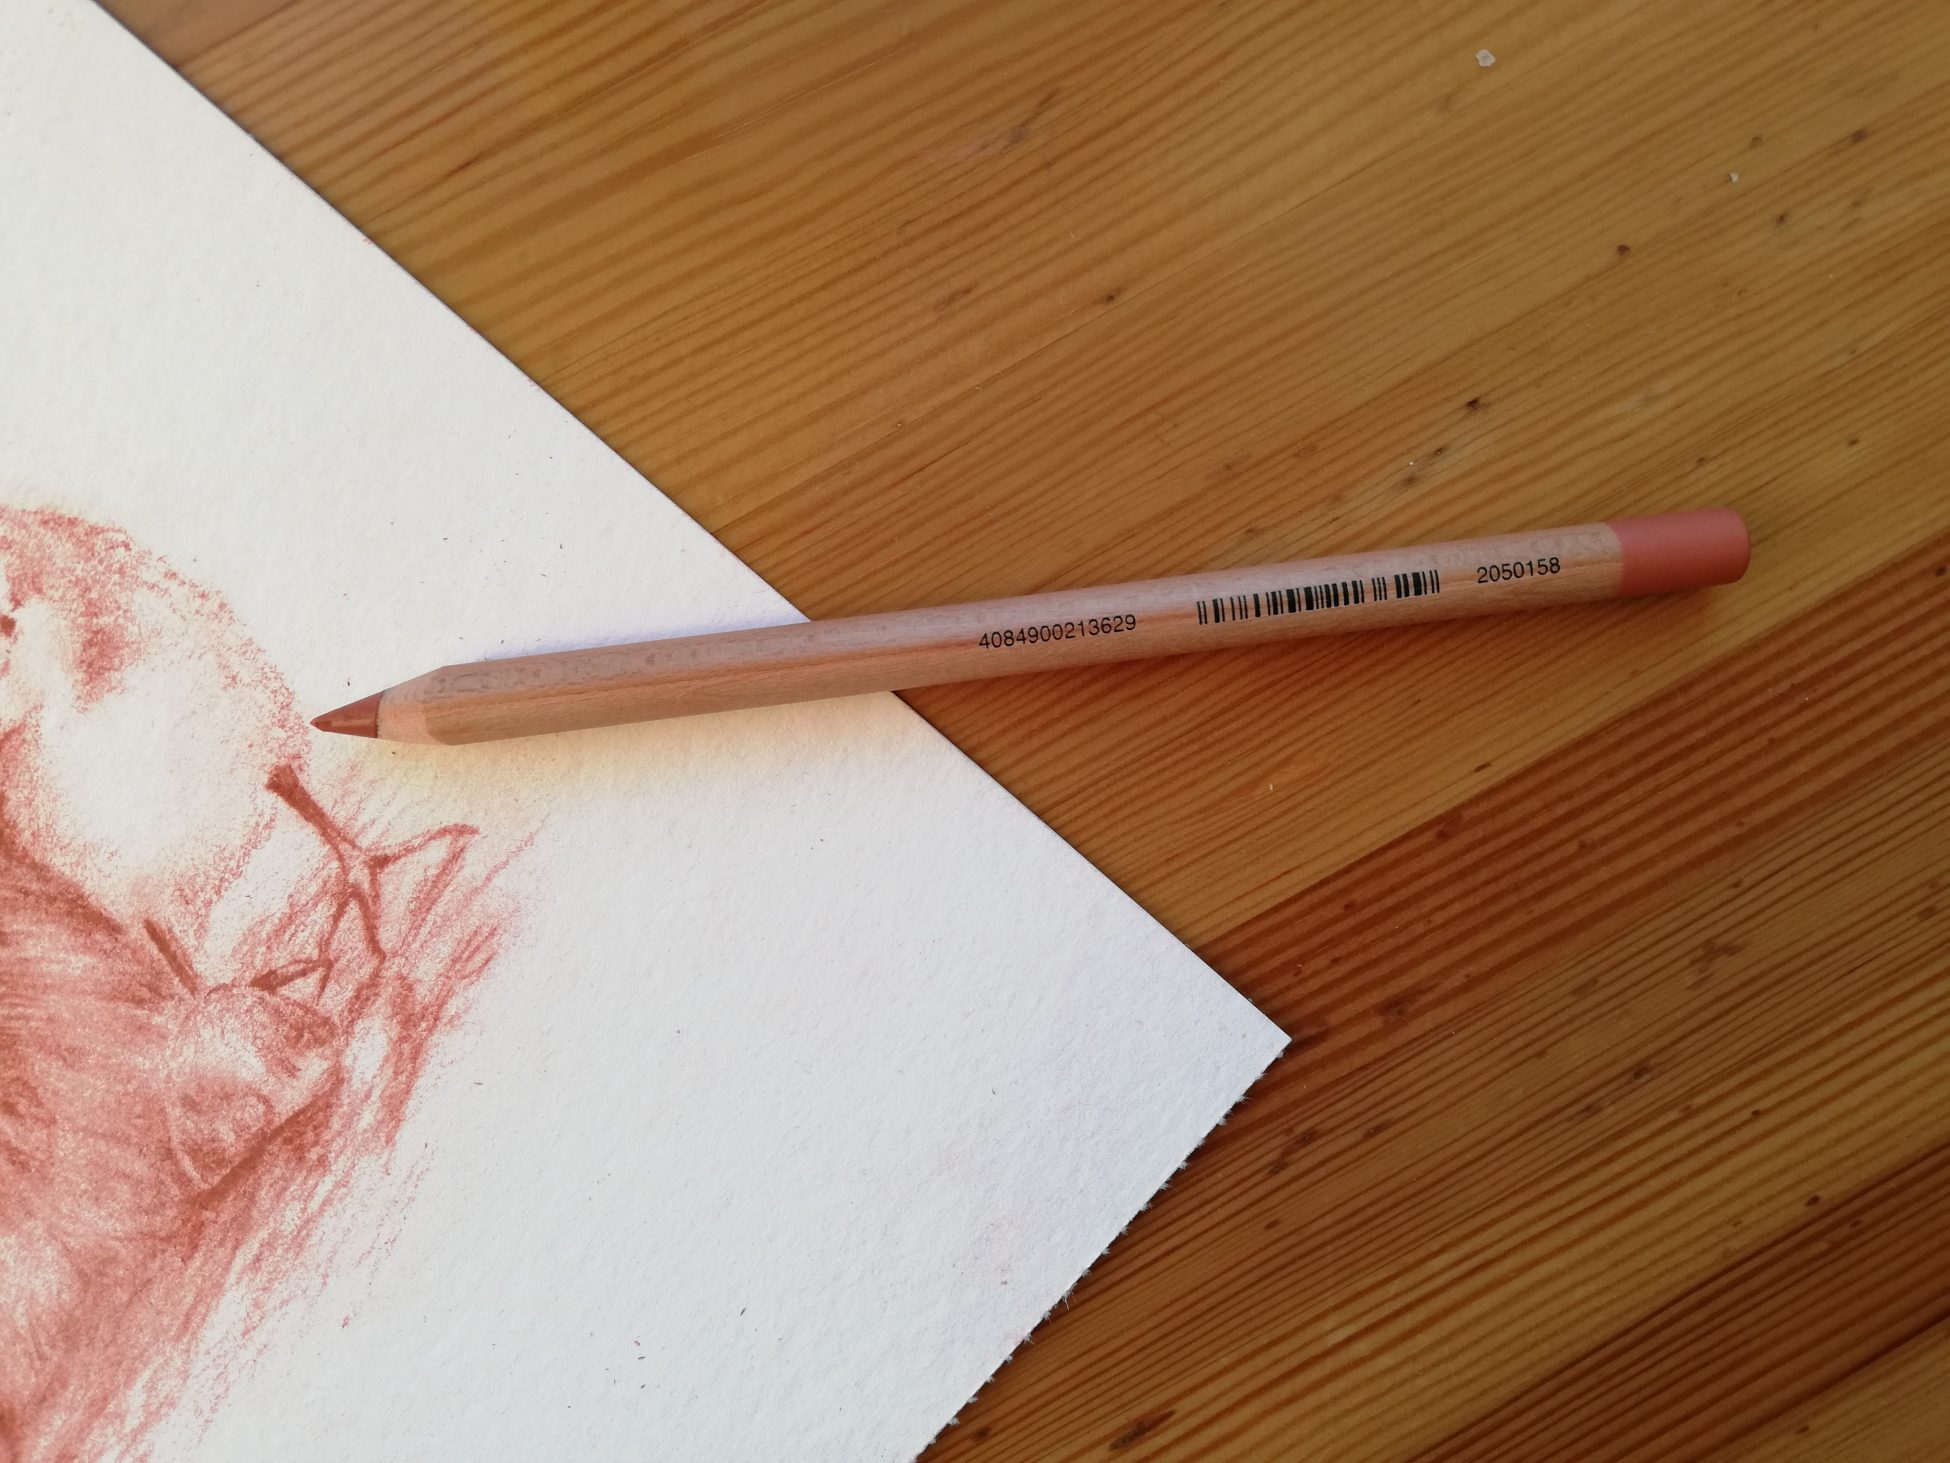 Sanguine Pencils – How To Draw With Them?